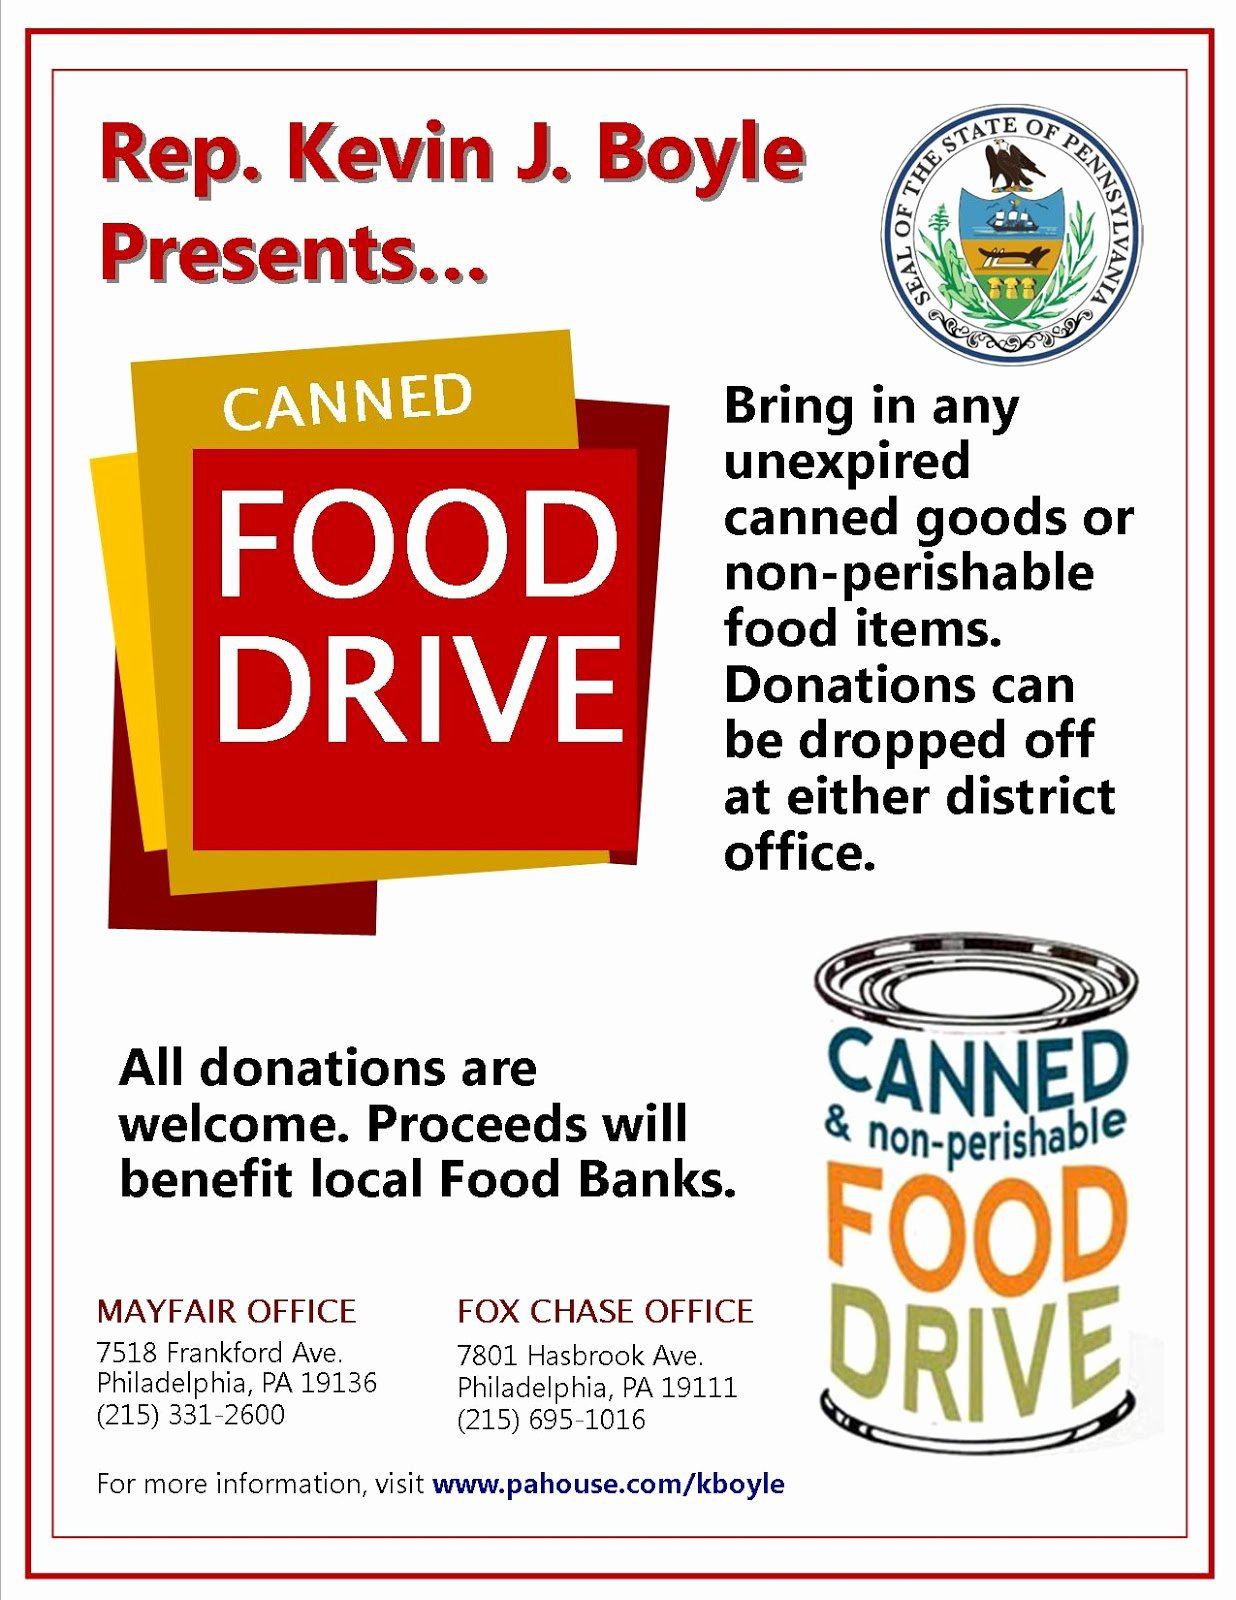 Canned Food Drive Flyer New Mayfair Civic association December 2012